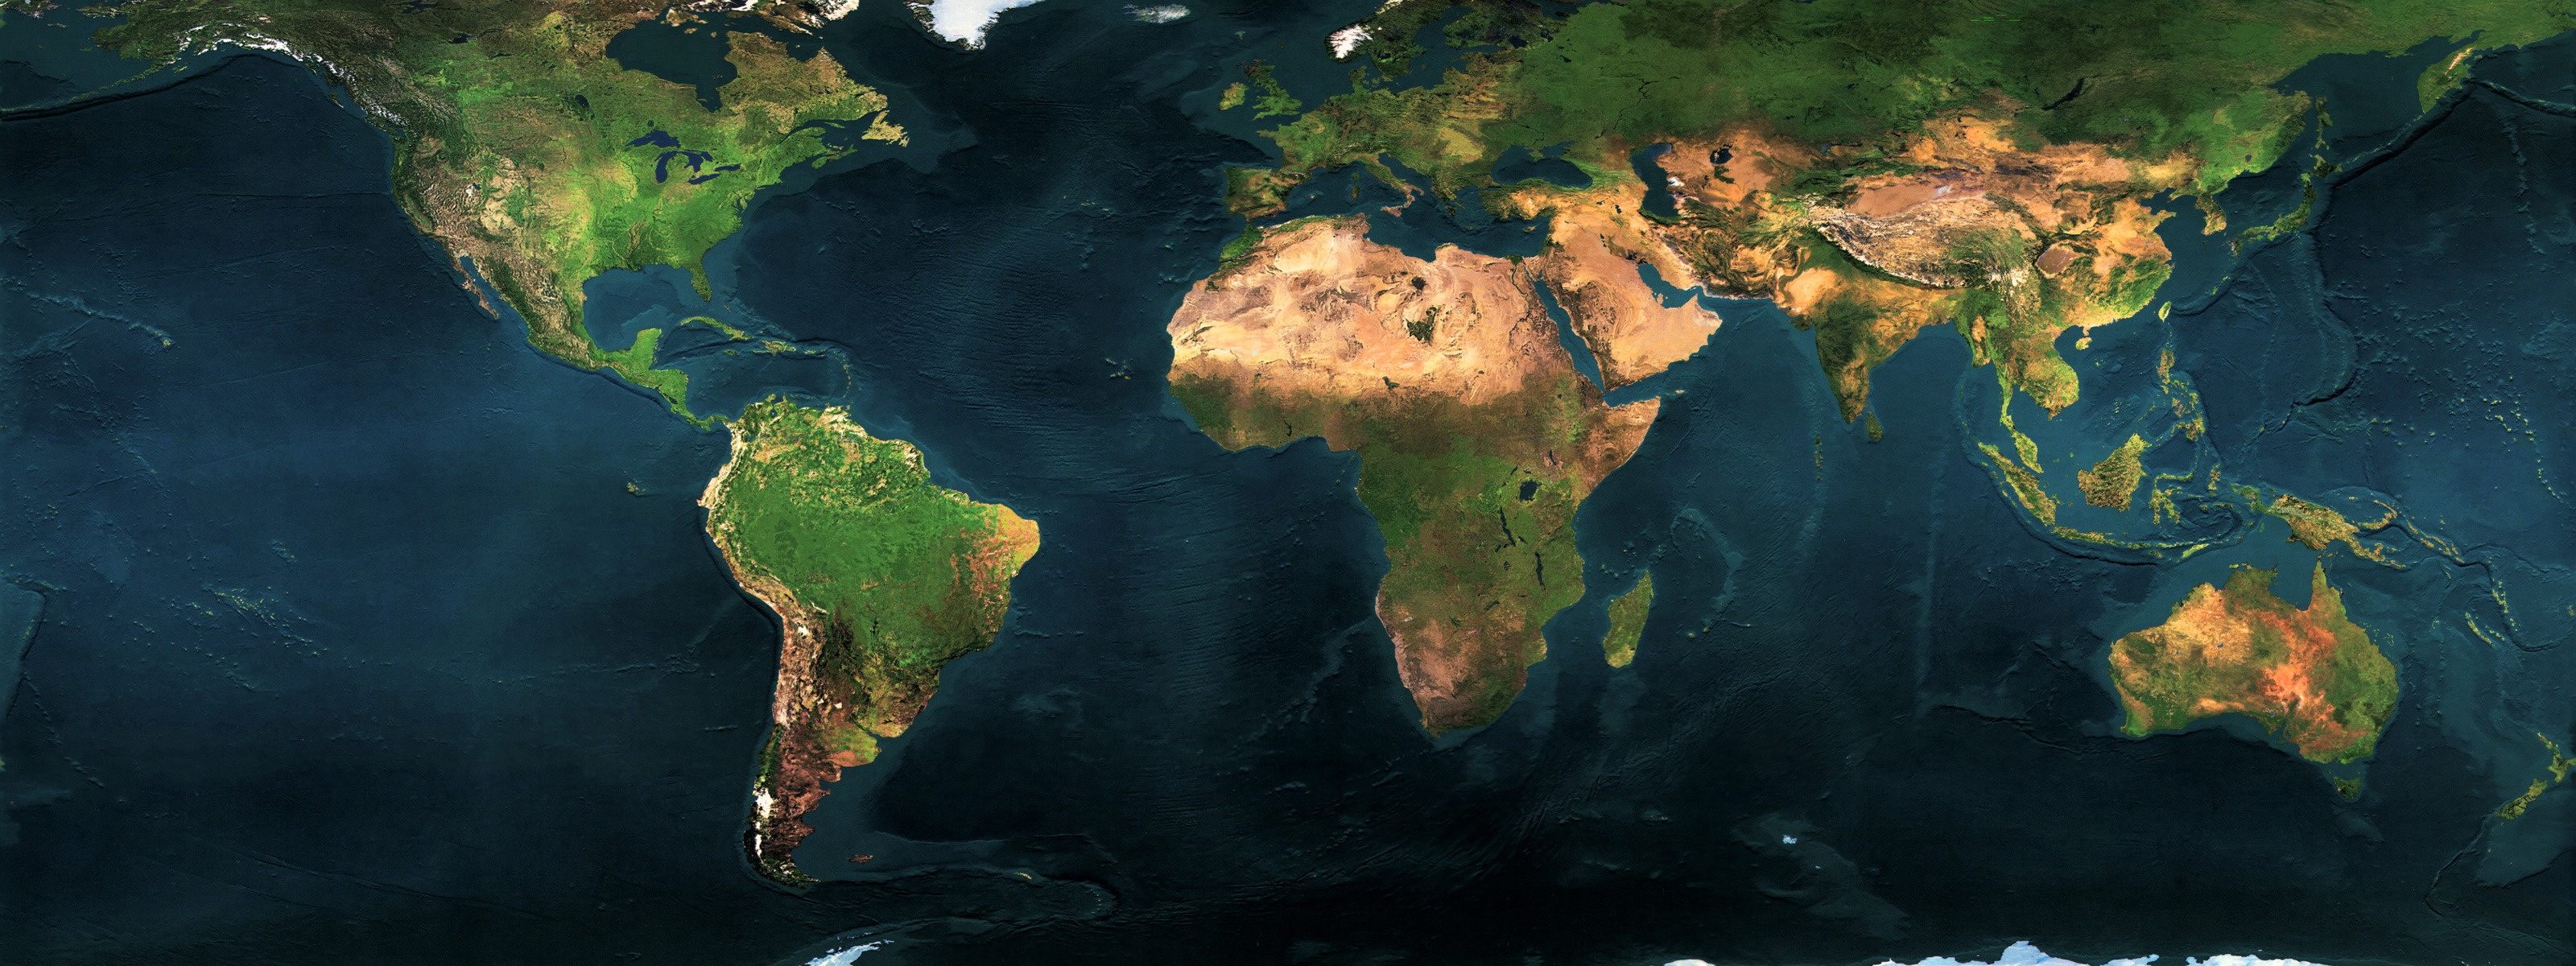 Earth map world free desktop wallpapers for widescreen hd and mobile wallpaper gumiabroncs Gallery